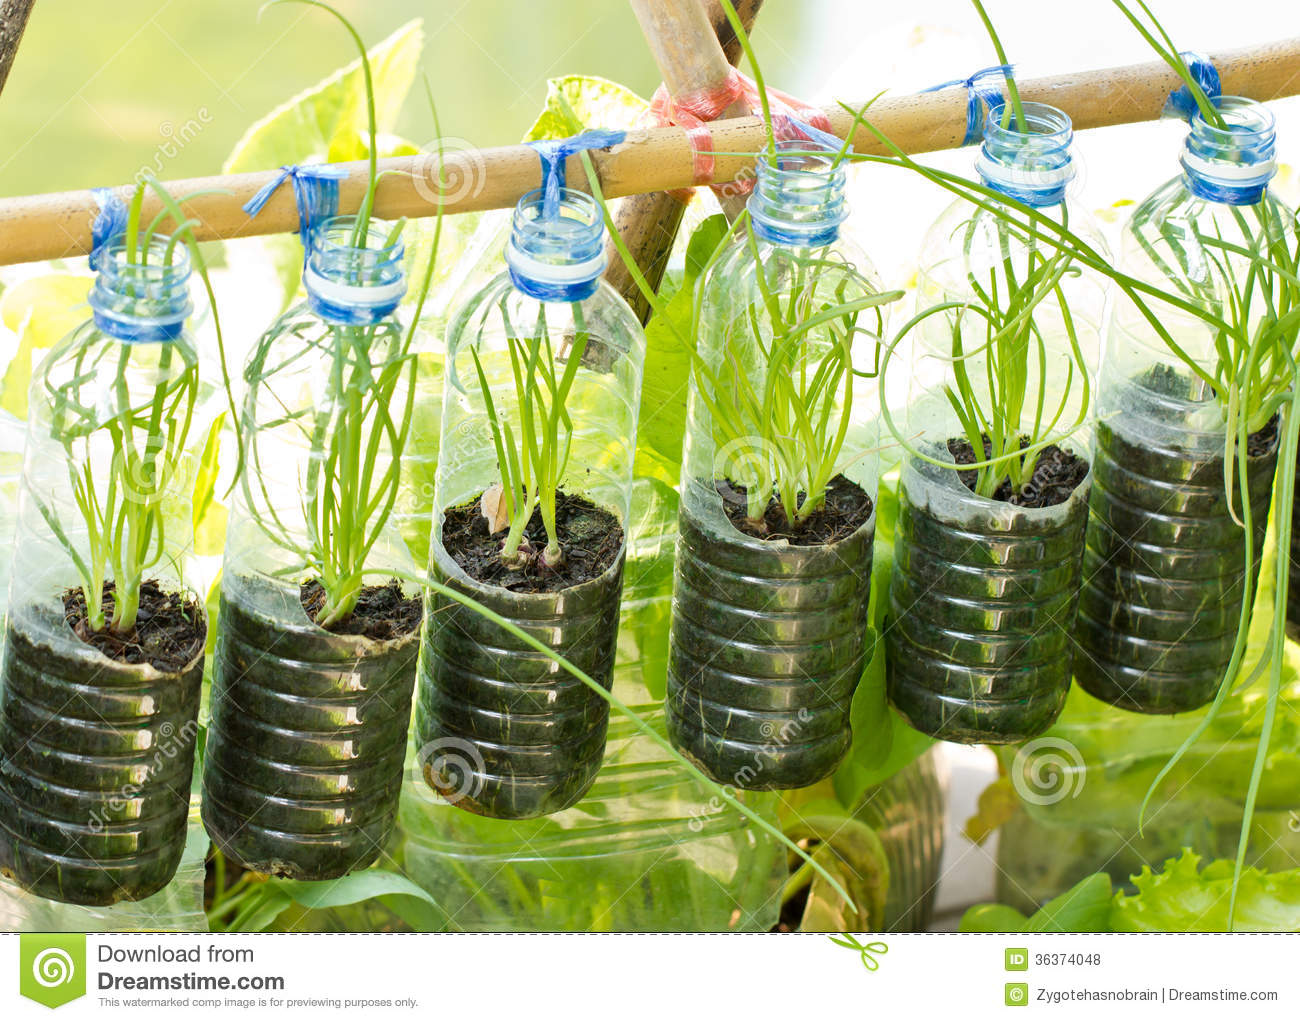 how to make vegetable plants grow in ontario